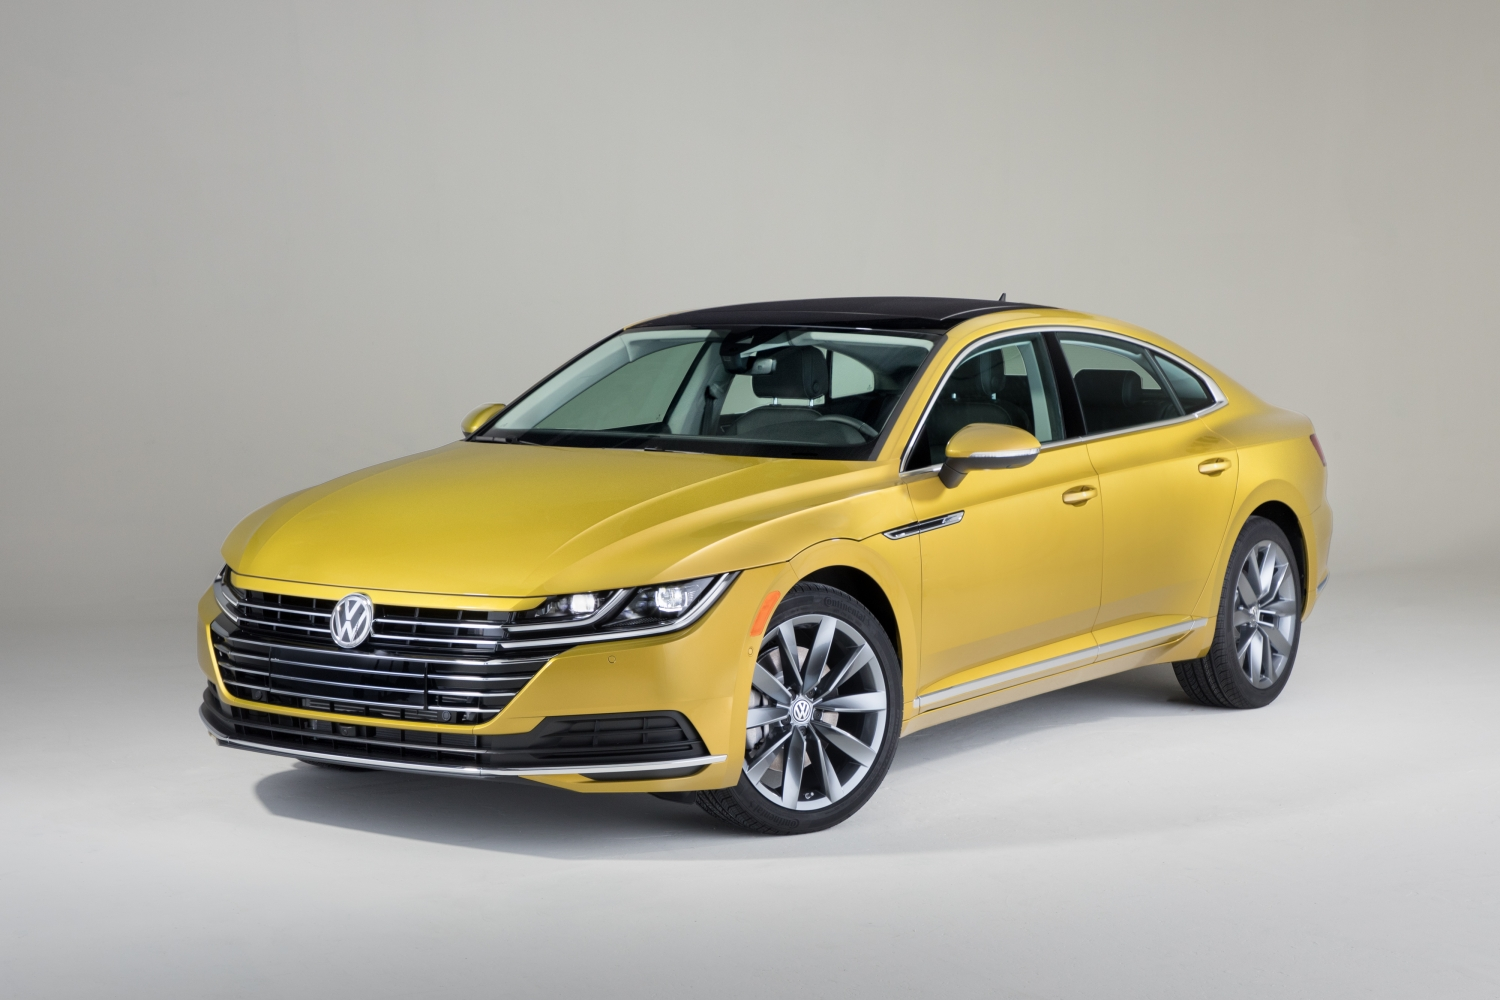 Volkswagen's New Flagship Sedan: The Arteon